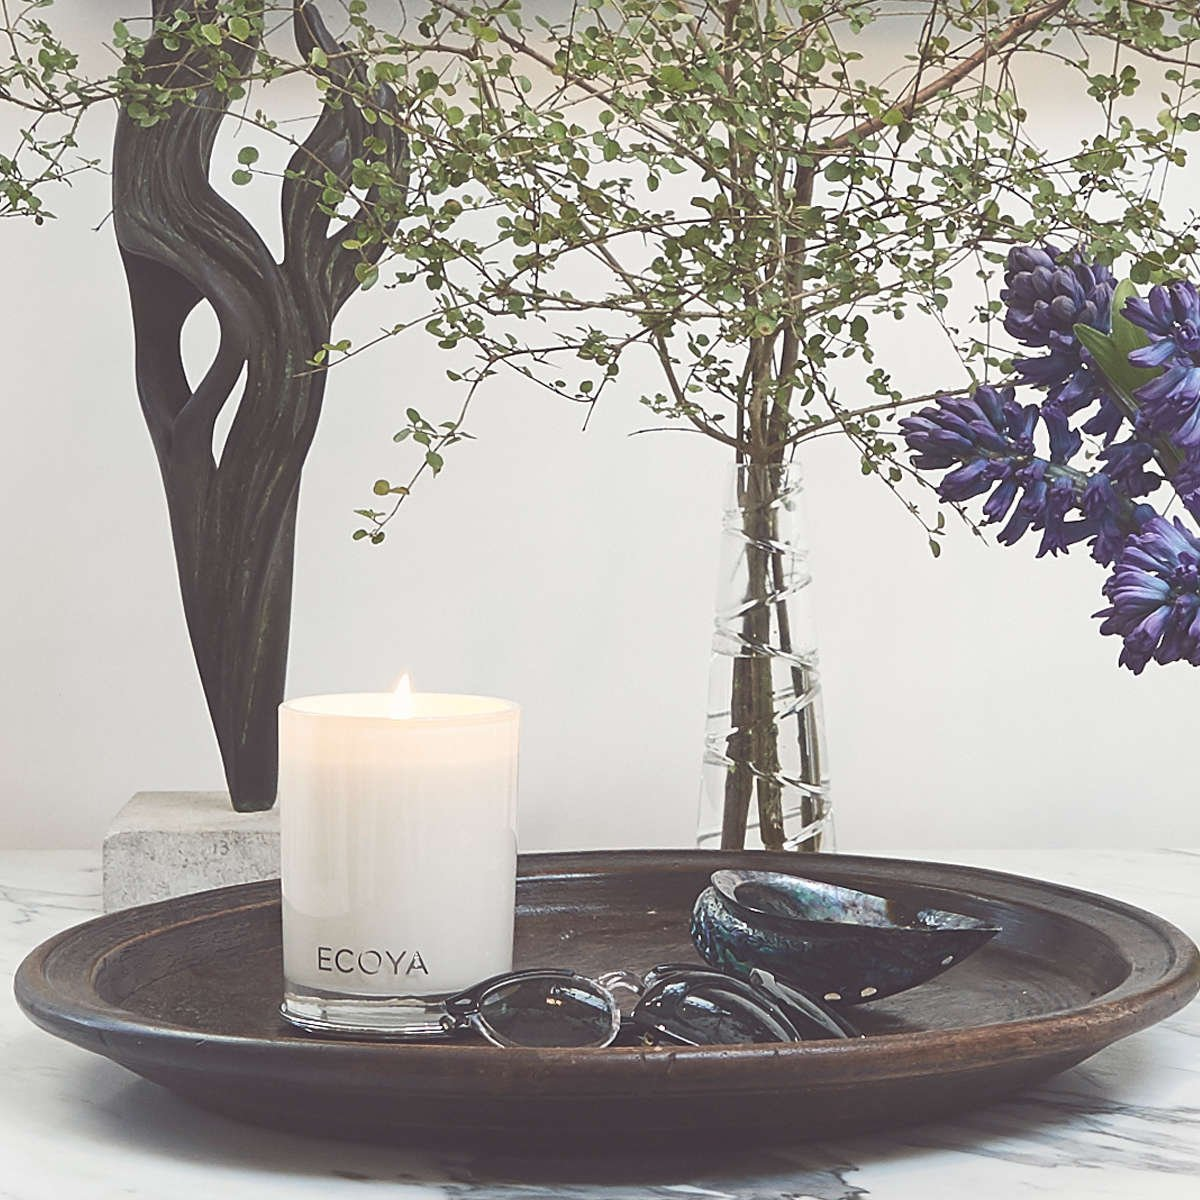 ECOYA candle, sunglasses and flowers in Mimi Gilmour-Buckley's home